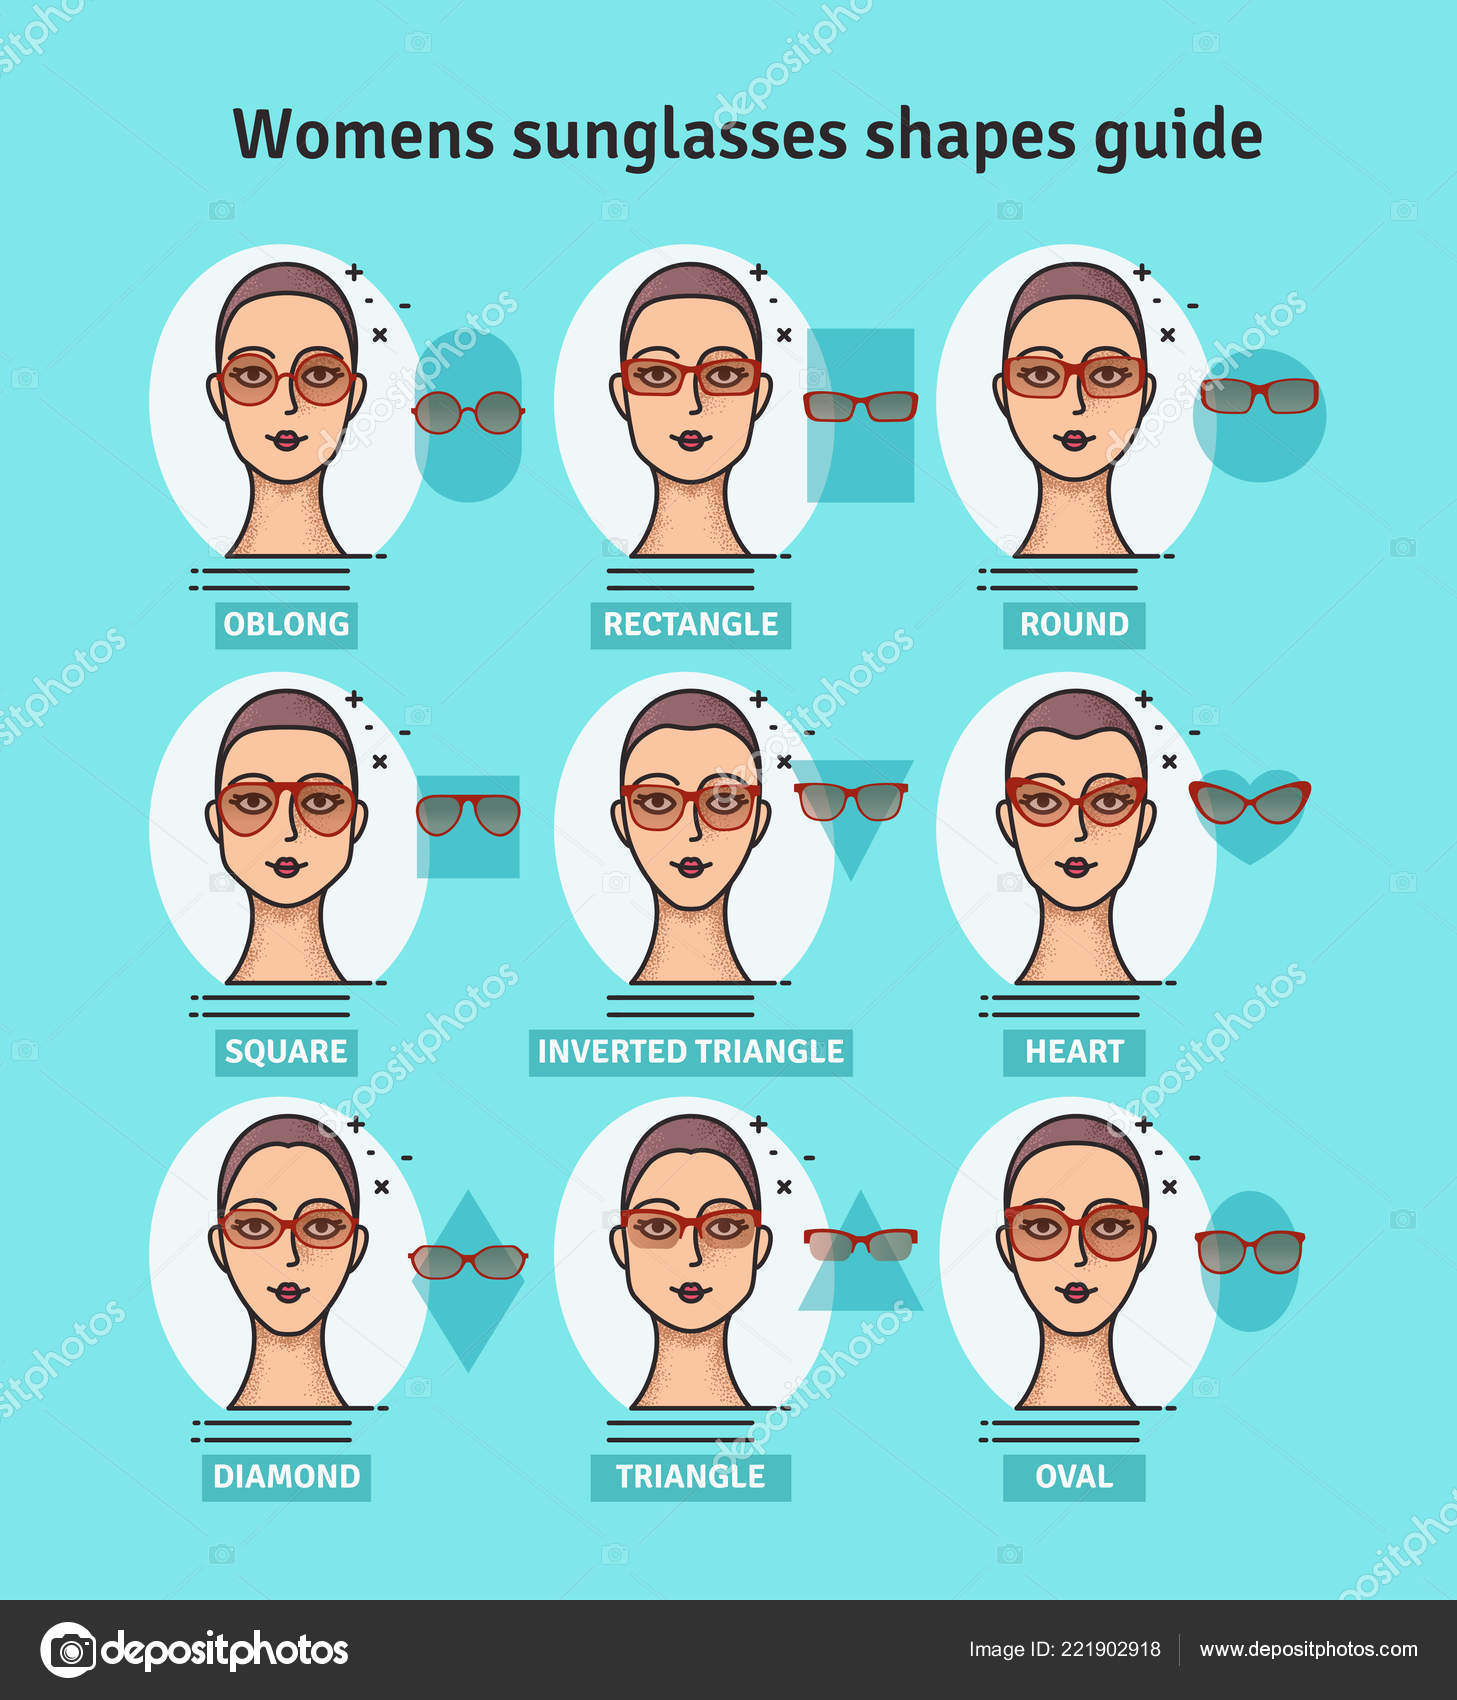 ce66681d510 Vector illustration.– stock illustration. Sunglasses shapes guide. Womens  sunglasses shapes matched with face shape. Various forms of sunglasses